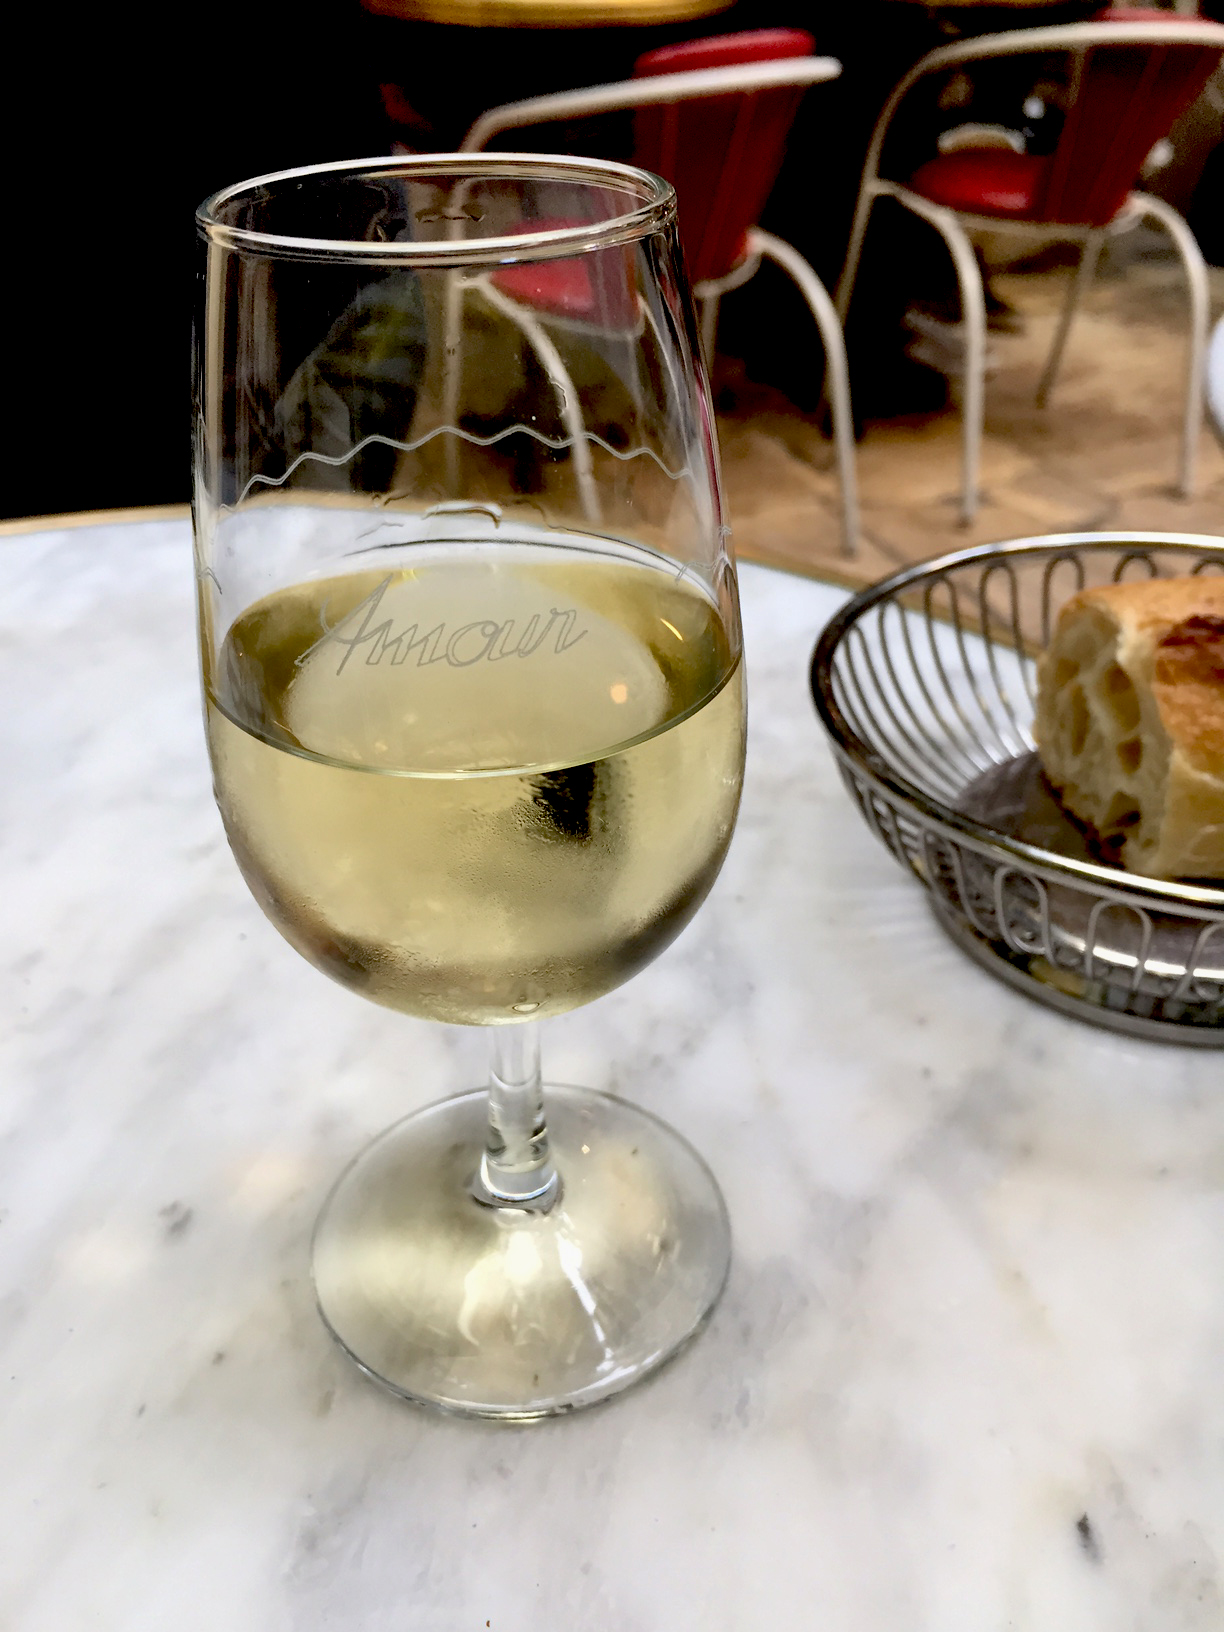 A nice crisp Sancerre for me. I brought back a set of six glasses in my suitcase. Amour is now in Modesto, too!